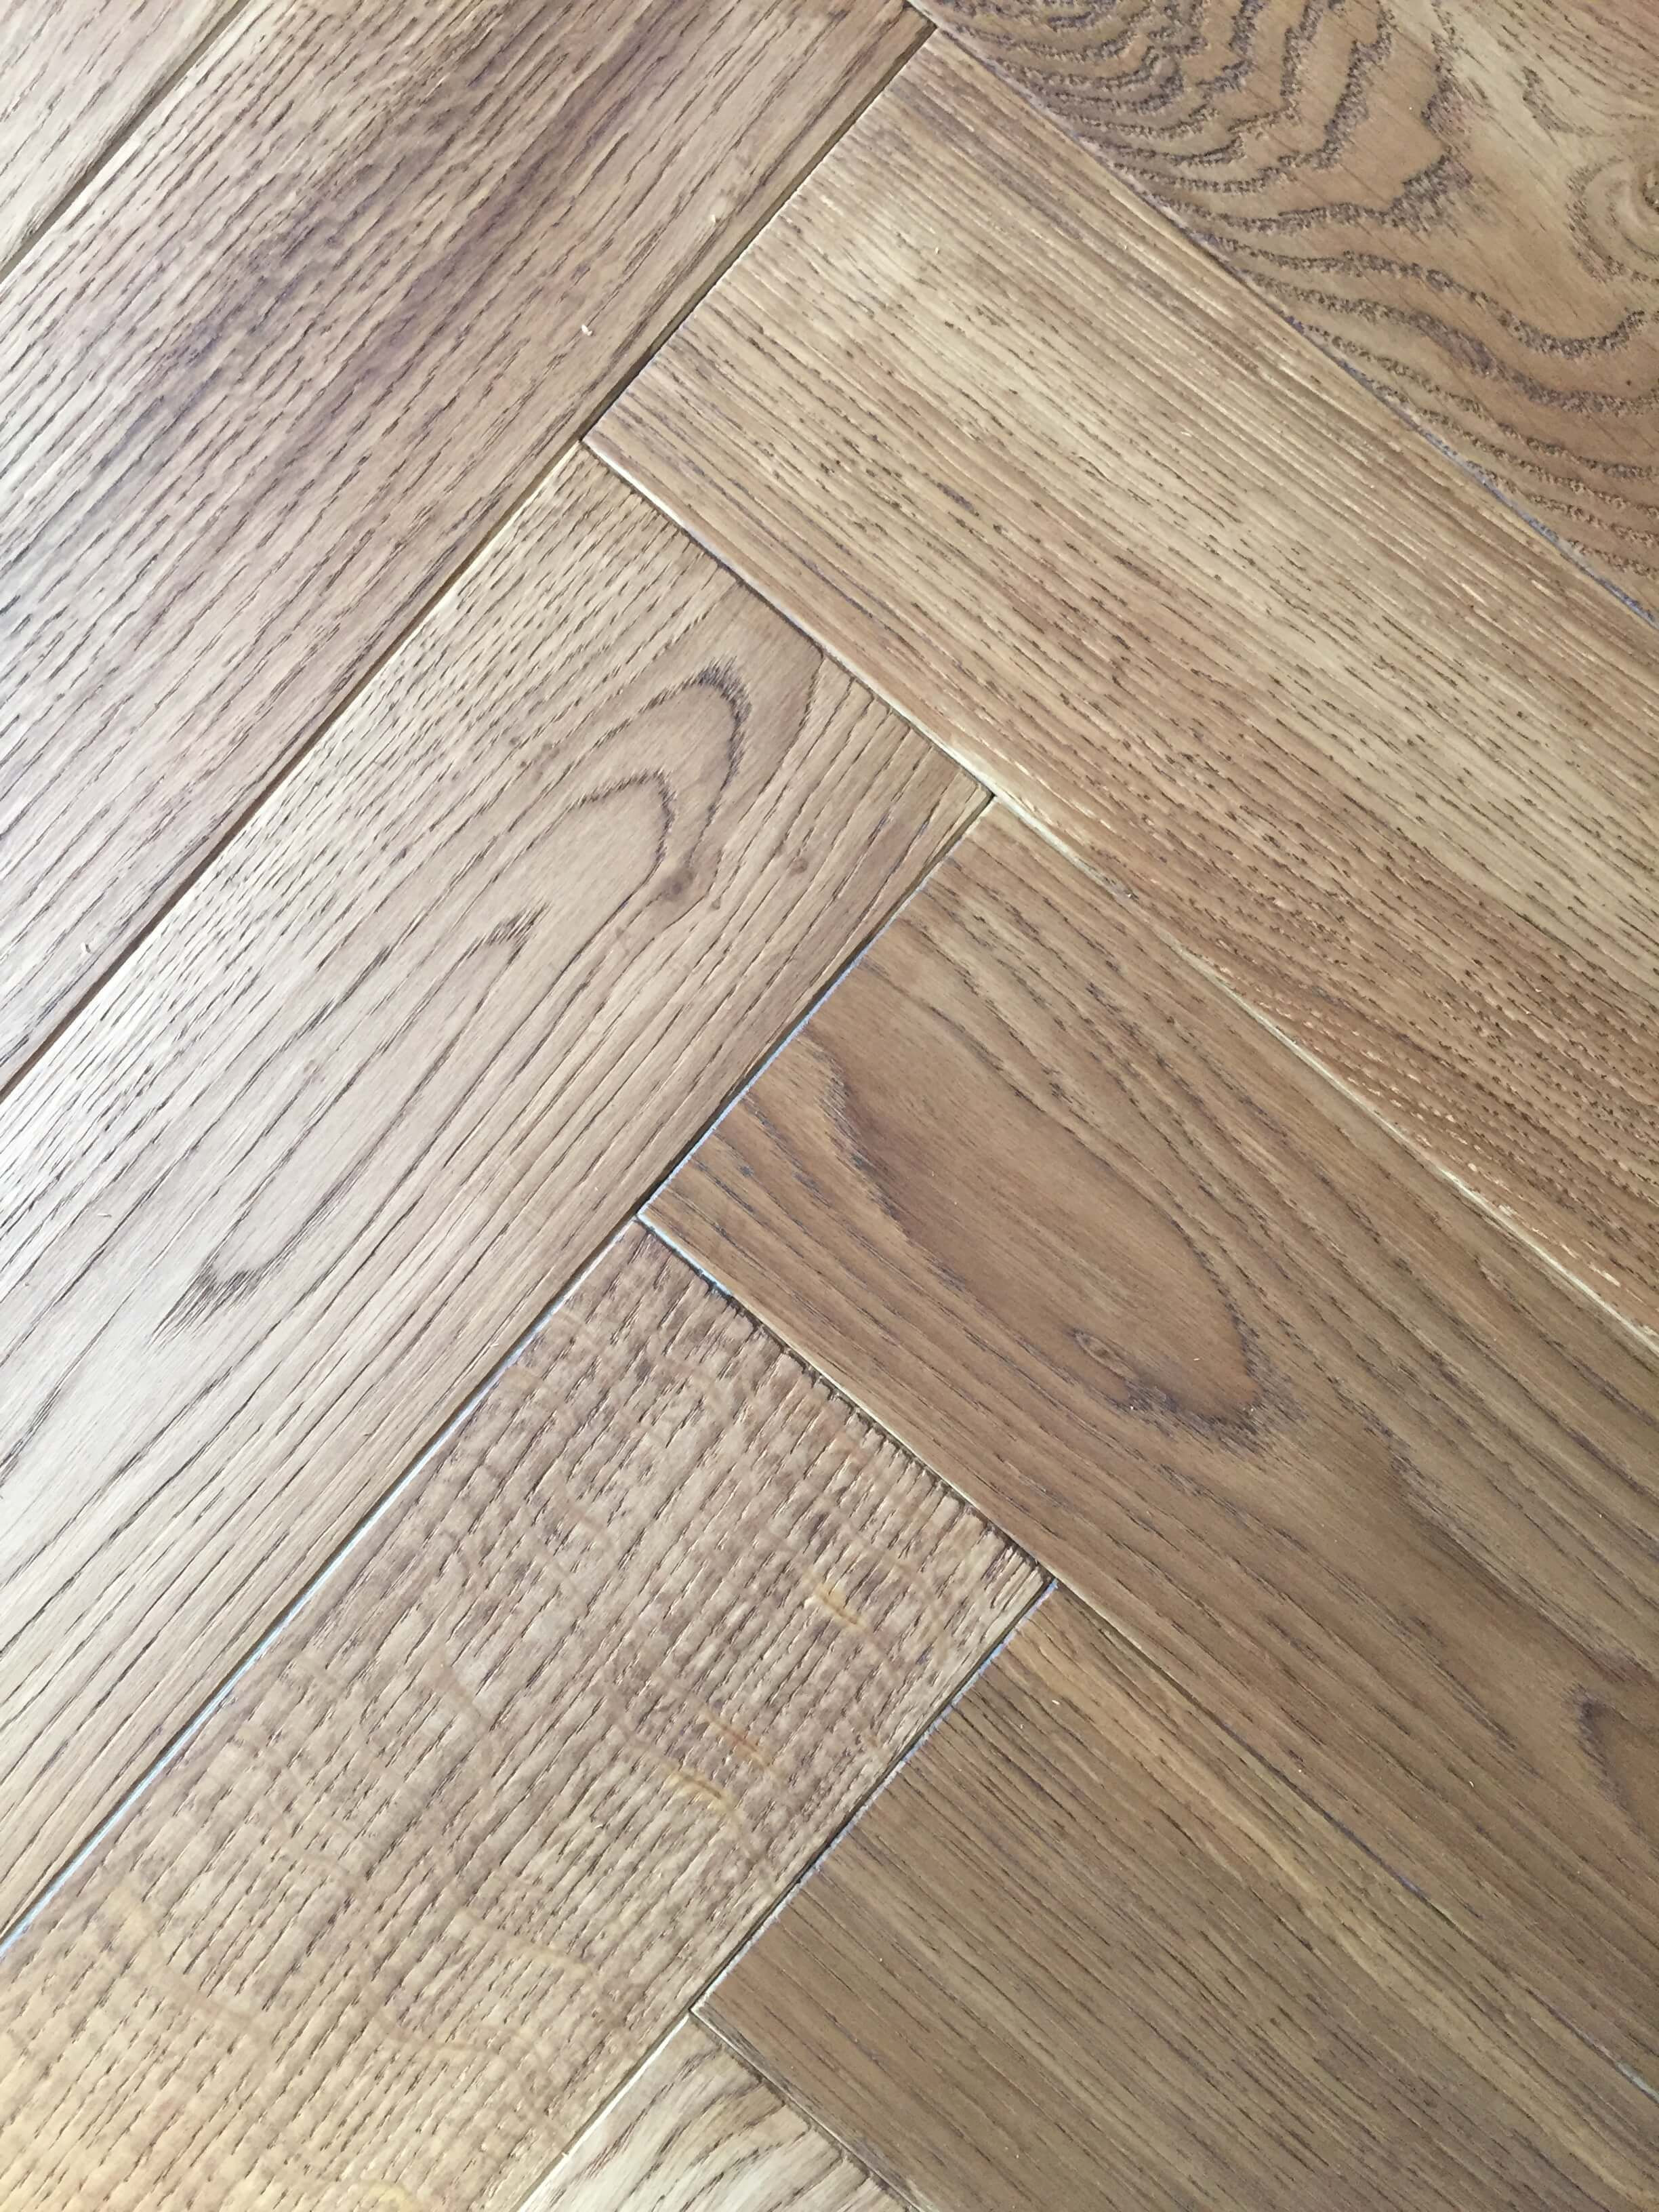 how to install engineered hardwood flooring on stairs of prefinished wood flooring floor plan ideas for prefinished wood flooring new decorating an open floor plan living room awesome design plan 0d